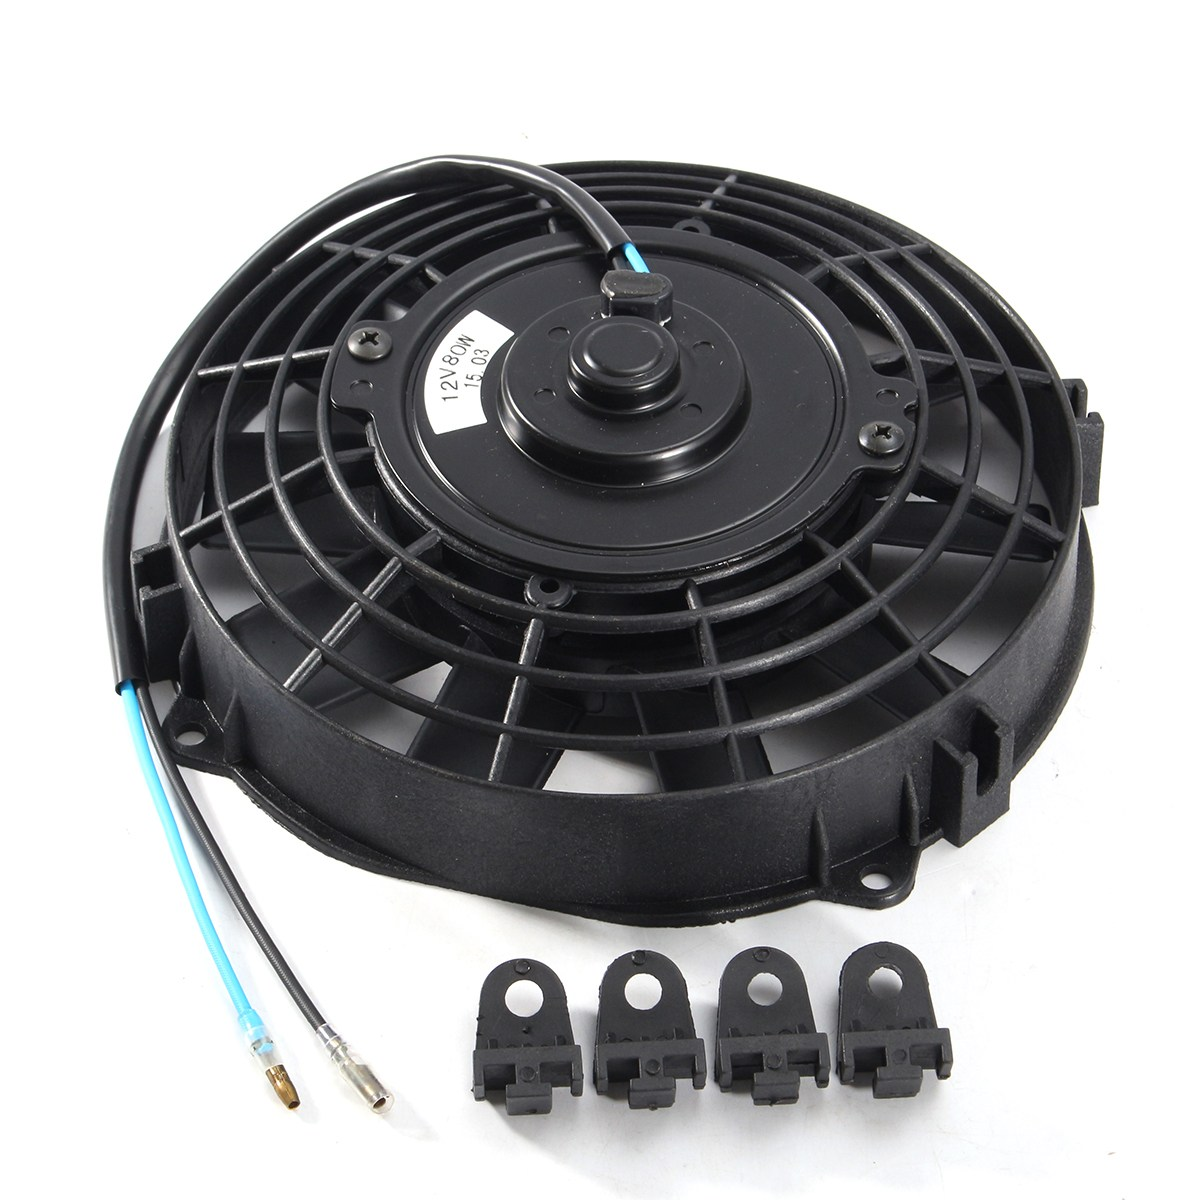 Image 3 - Universal 8 9 10 12 14 Inch 12V 80W 2100RPM Straight Black Blade Electric Cooling Radiator Fan Kit-in Fans & Kits from Automobiles & Motorcycles